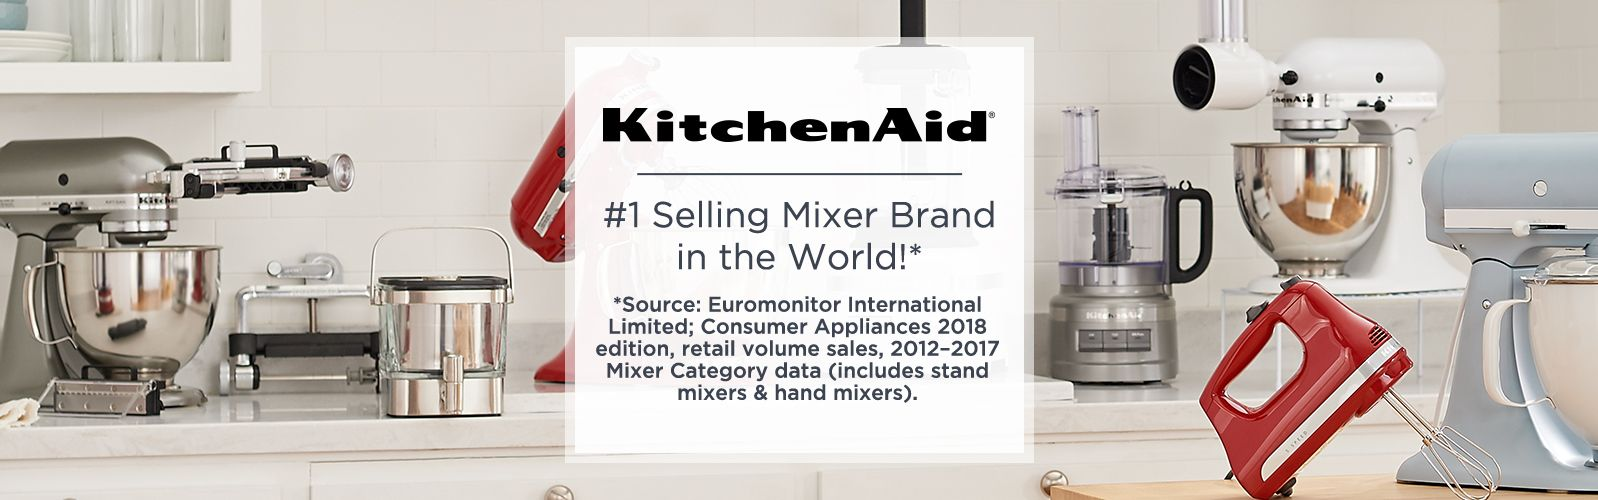 KitchenAid. #1 Selling Mixer Brand In The World!